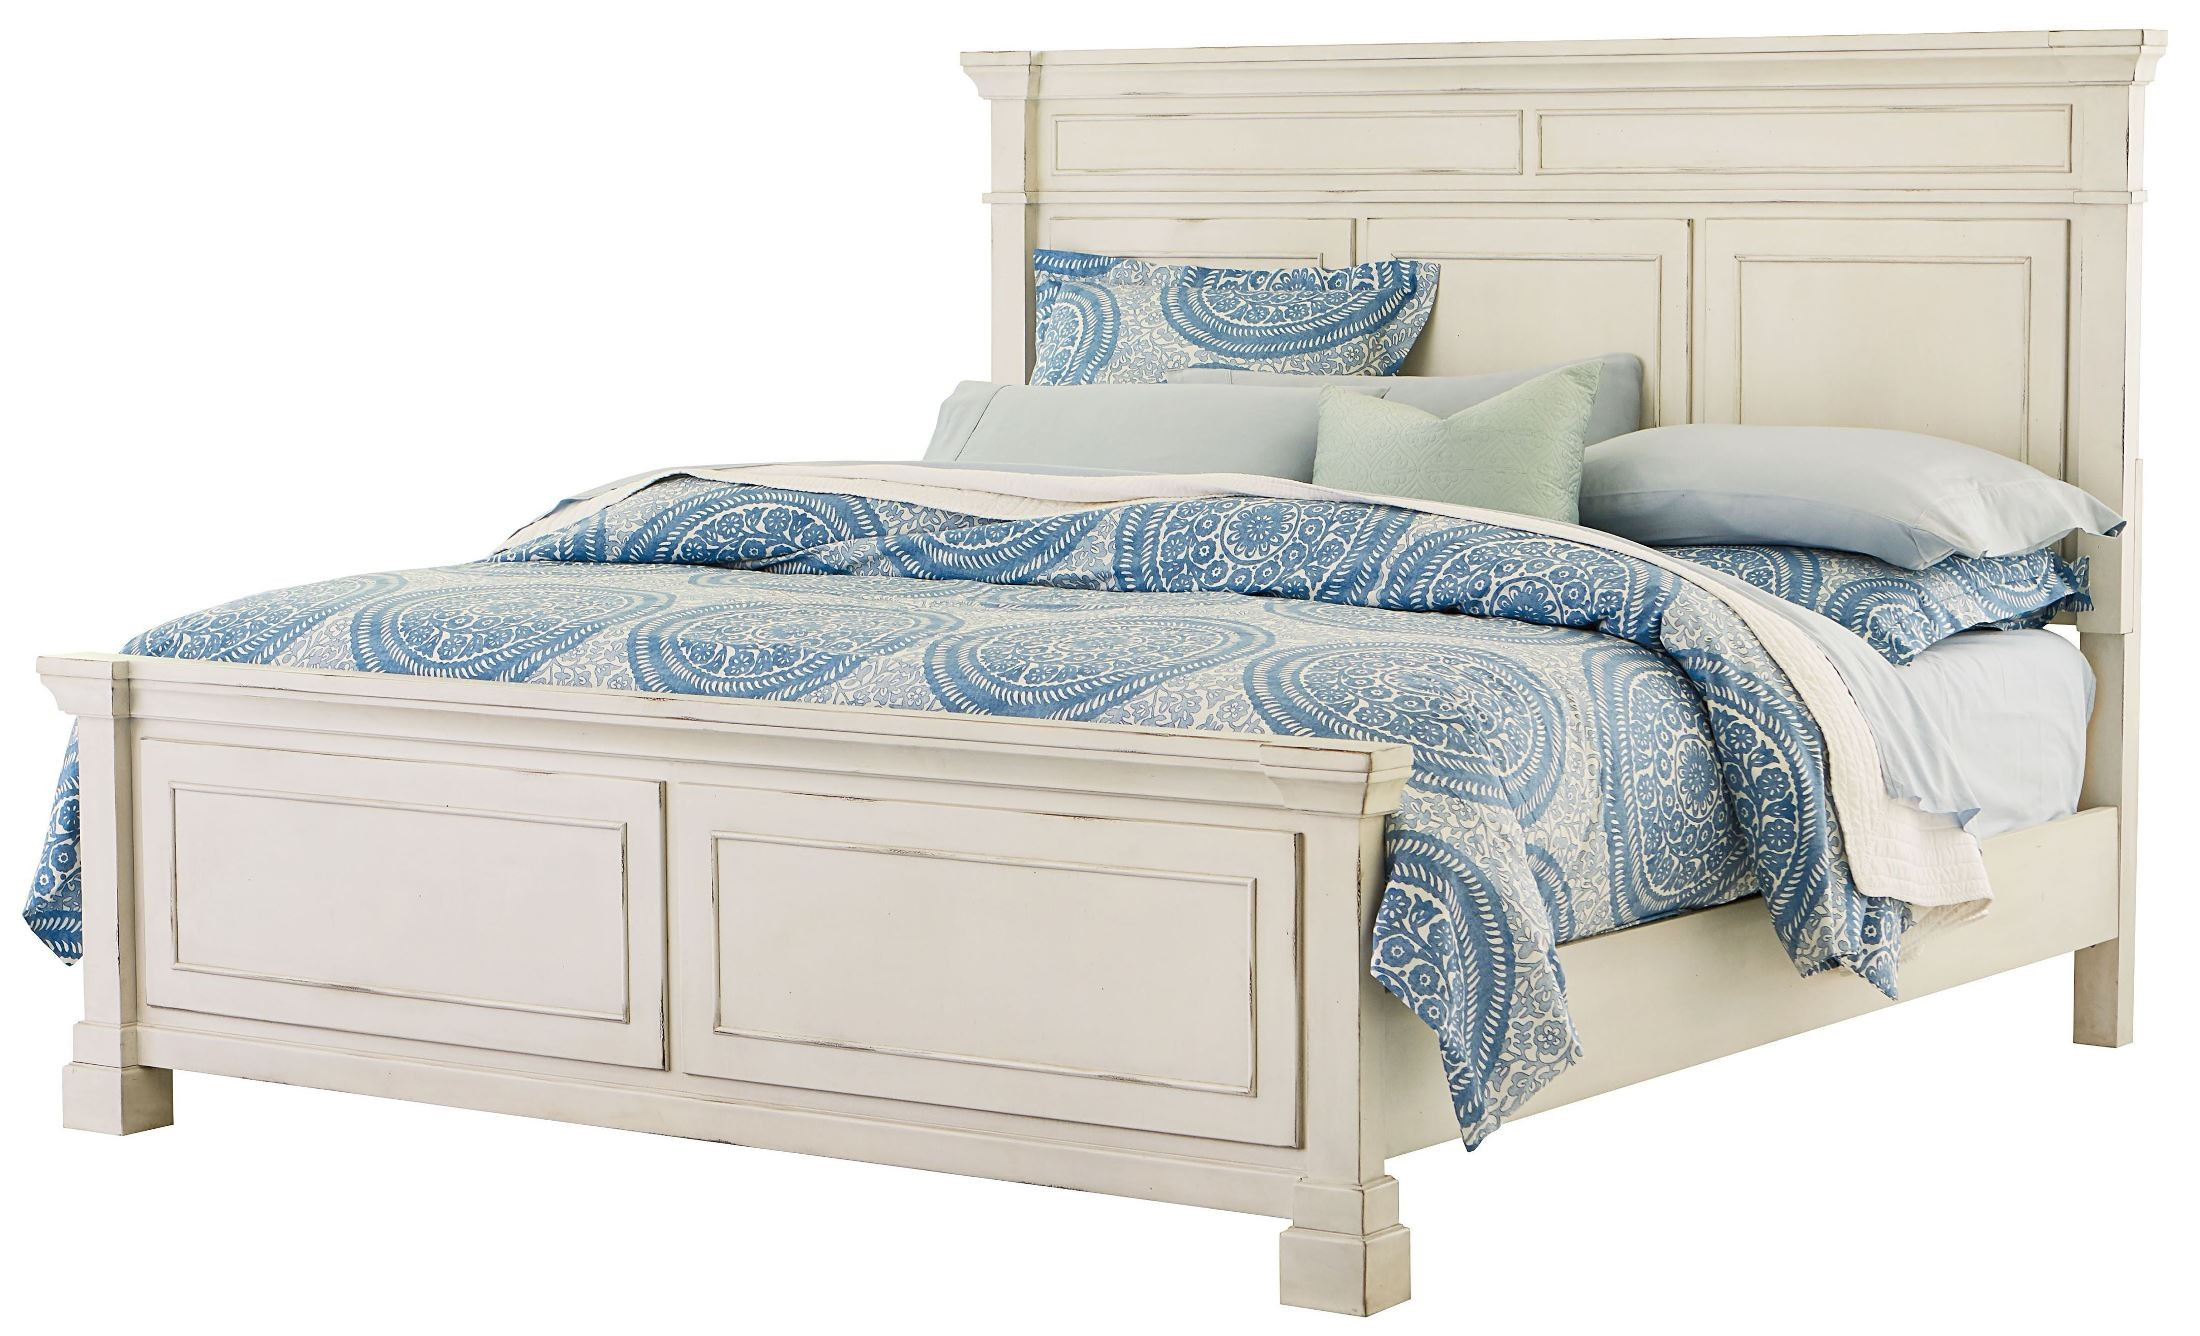 Chesapeake Bay Vintage Chalk White King Panel Bed From